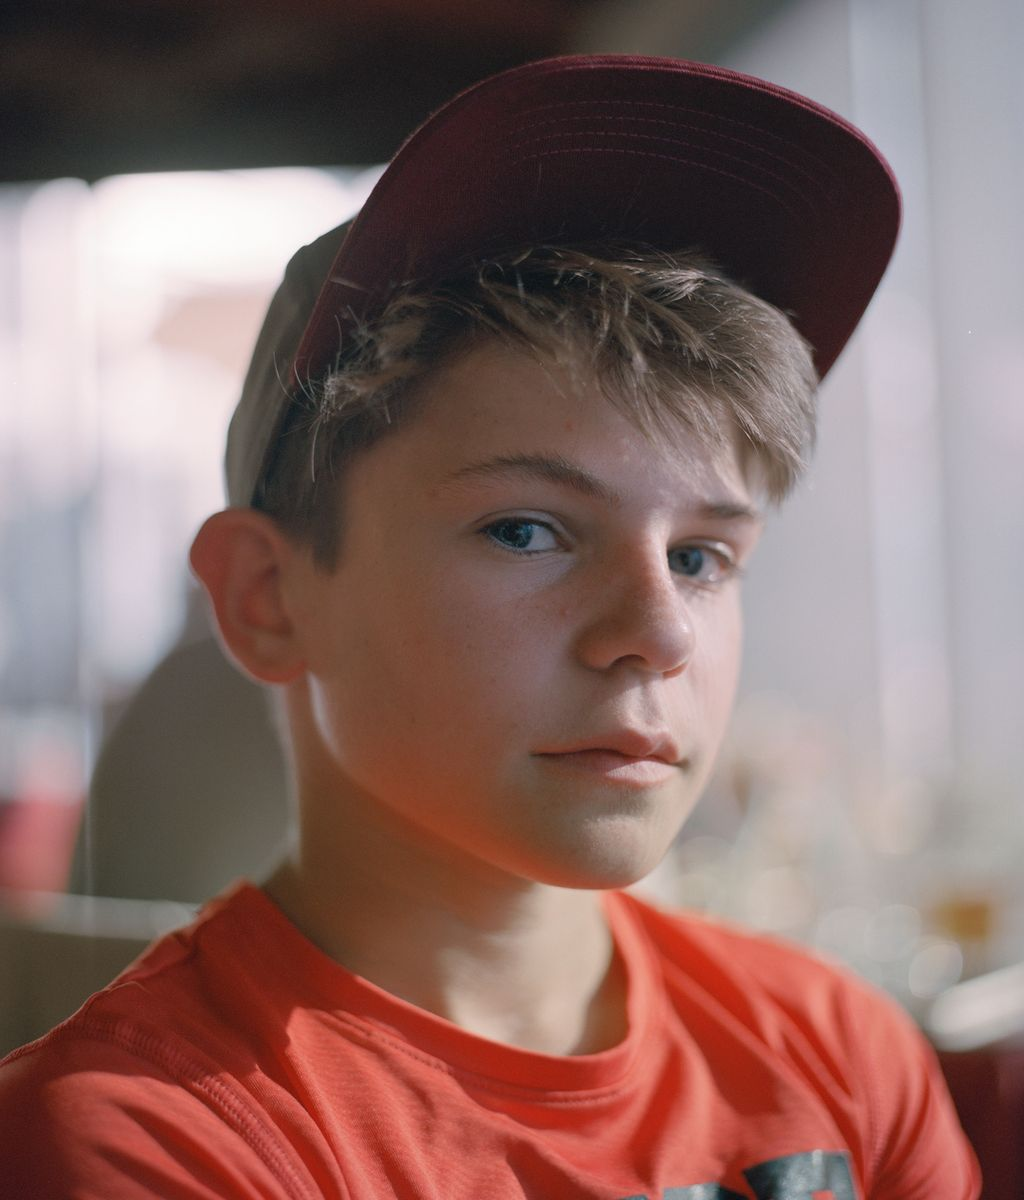 13 Year Old Boy Bedrooms: Talking To My 13-Year-Old Son About The Hard Topics